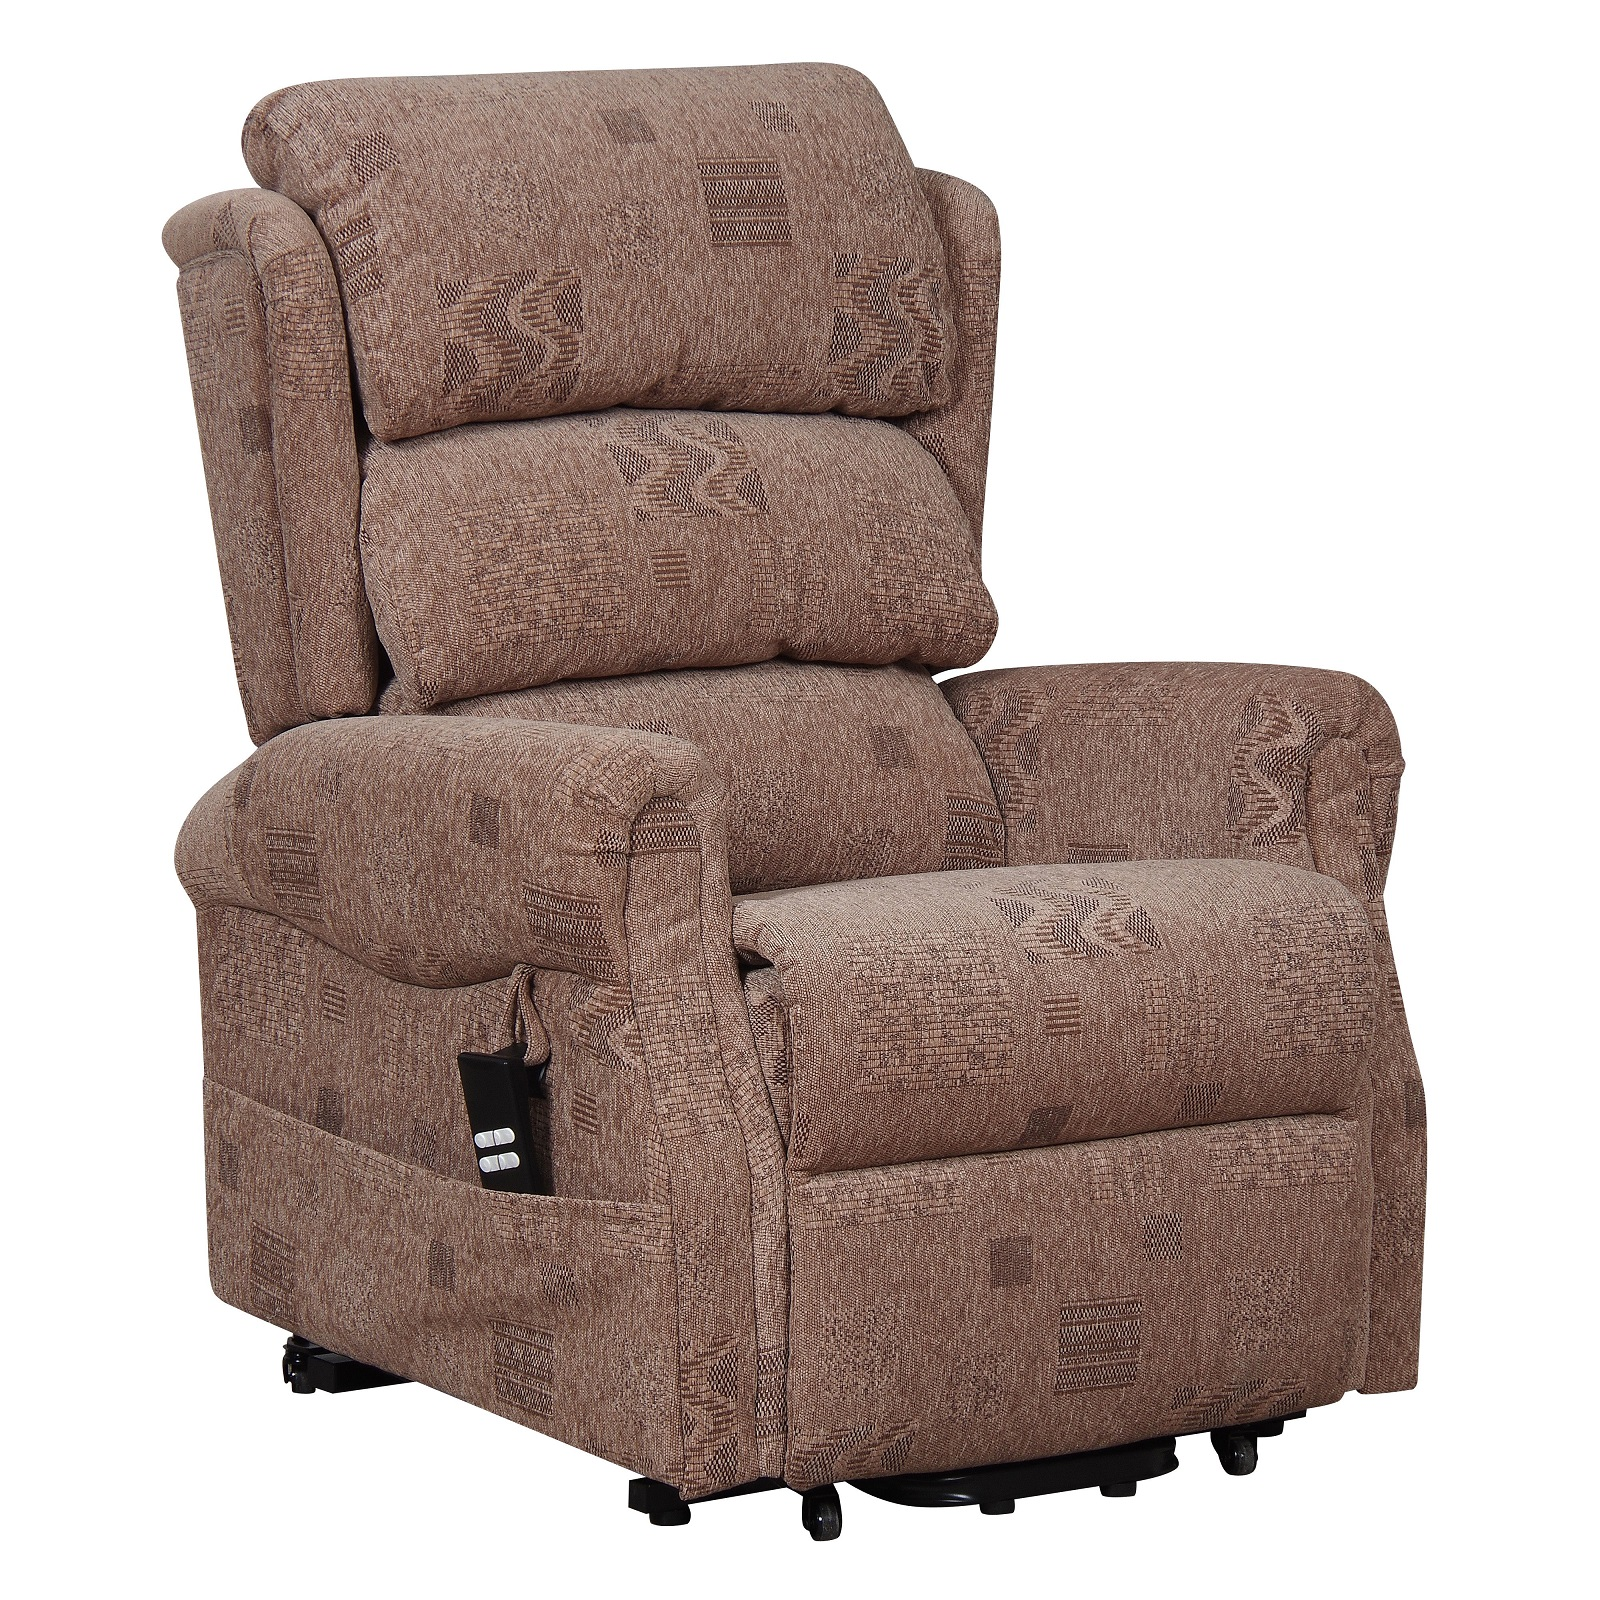 Axbridge Petite Electric rise and recliner mobility chair Elite